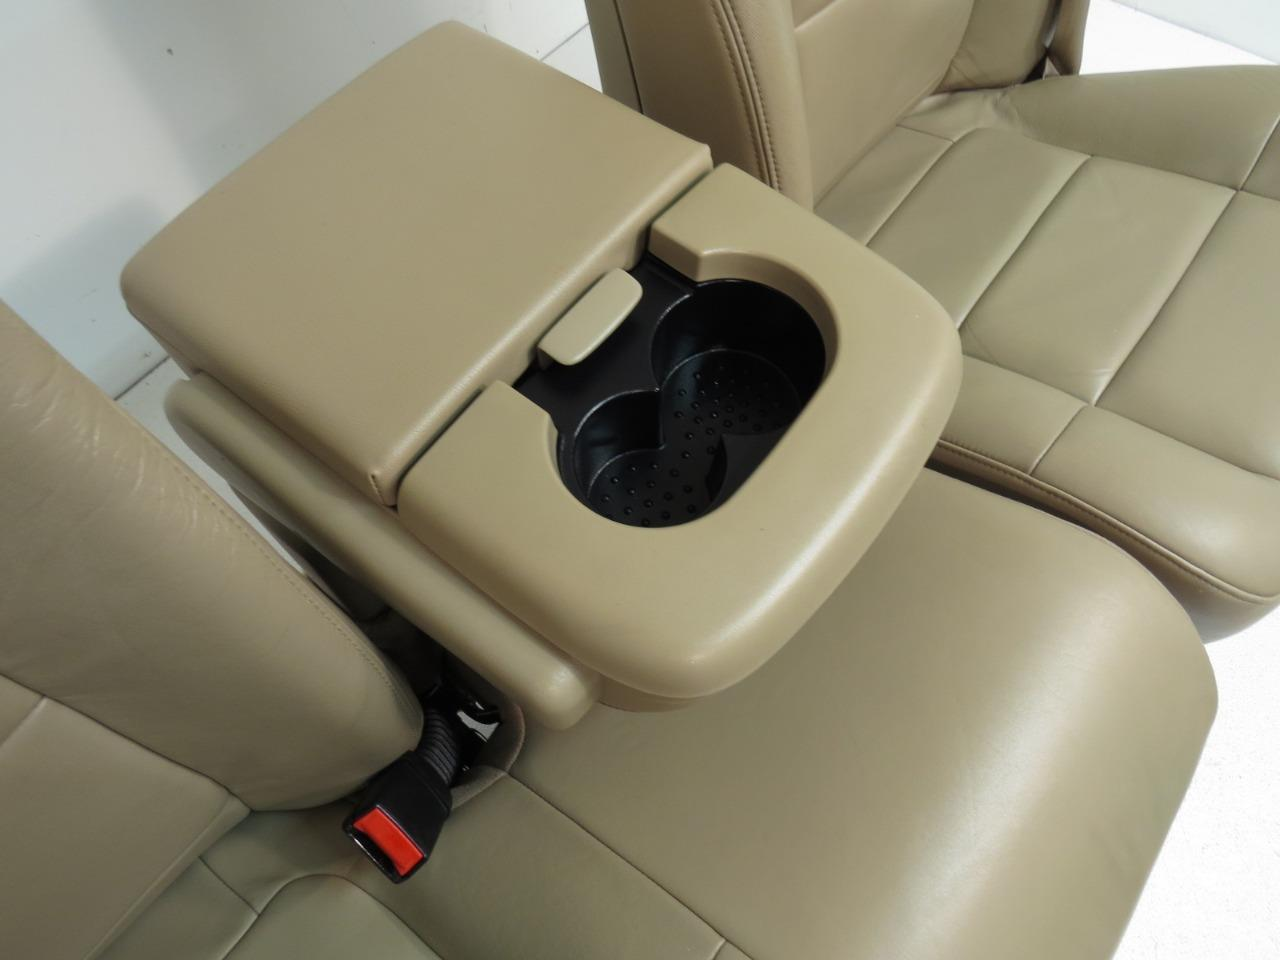 Stupendous Ford F150 F 150 Tan Leather Lariat Seats 60 40 With Integrated Seat Belt 1997 1998 1999 2000 2001 2002 2003 Lamtechconsult Wood Chair Design Ideas Lamtechconsultcom